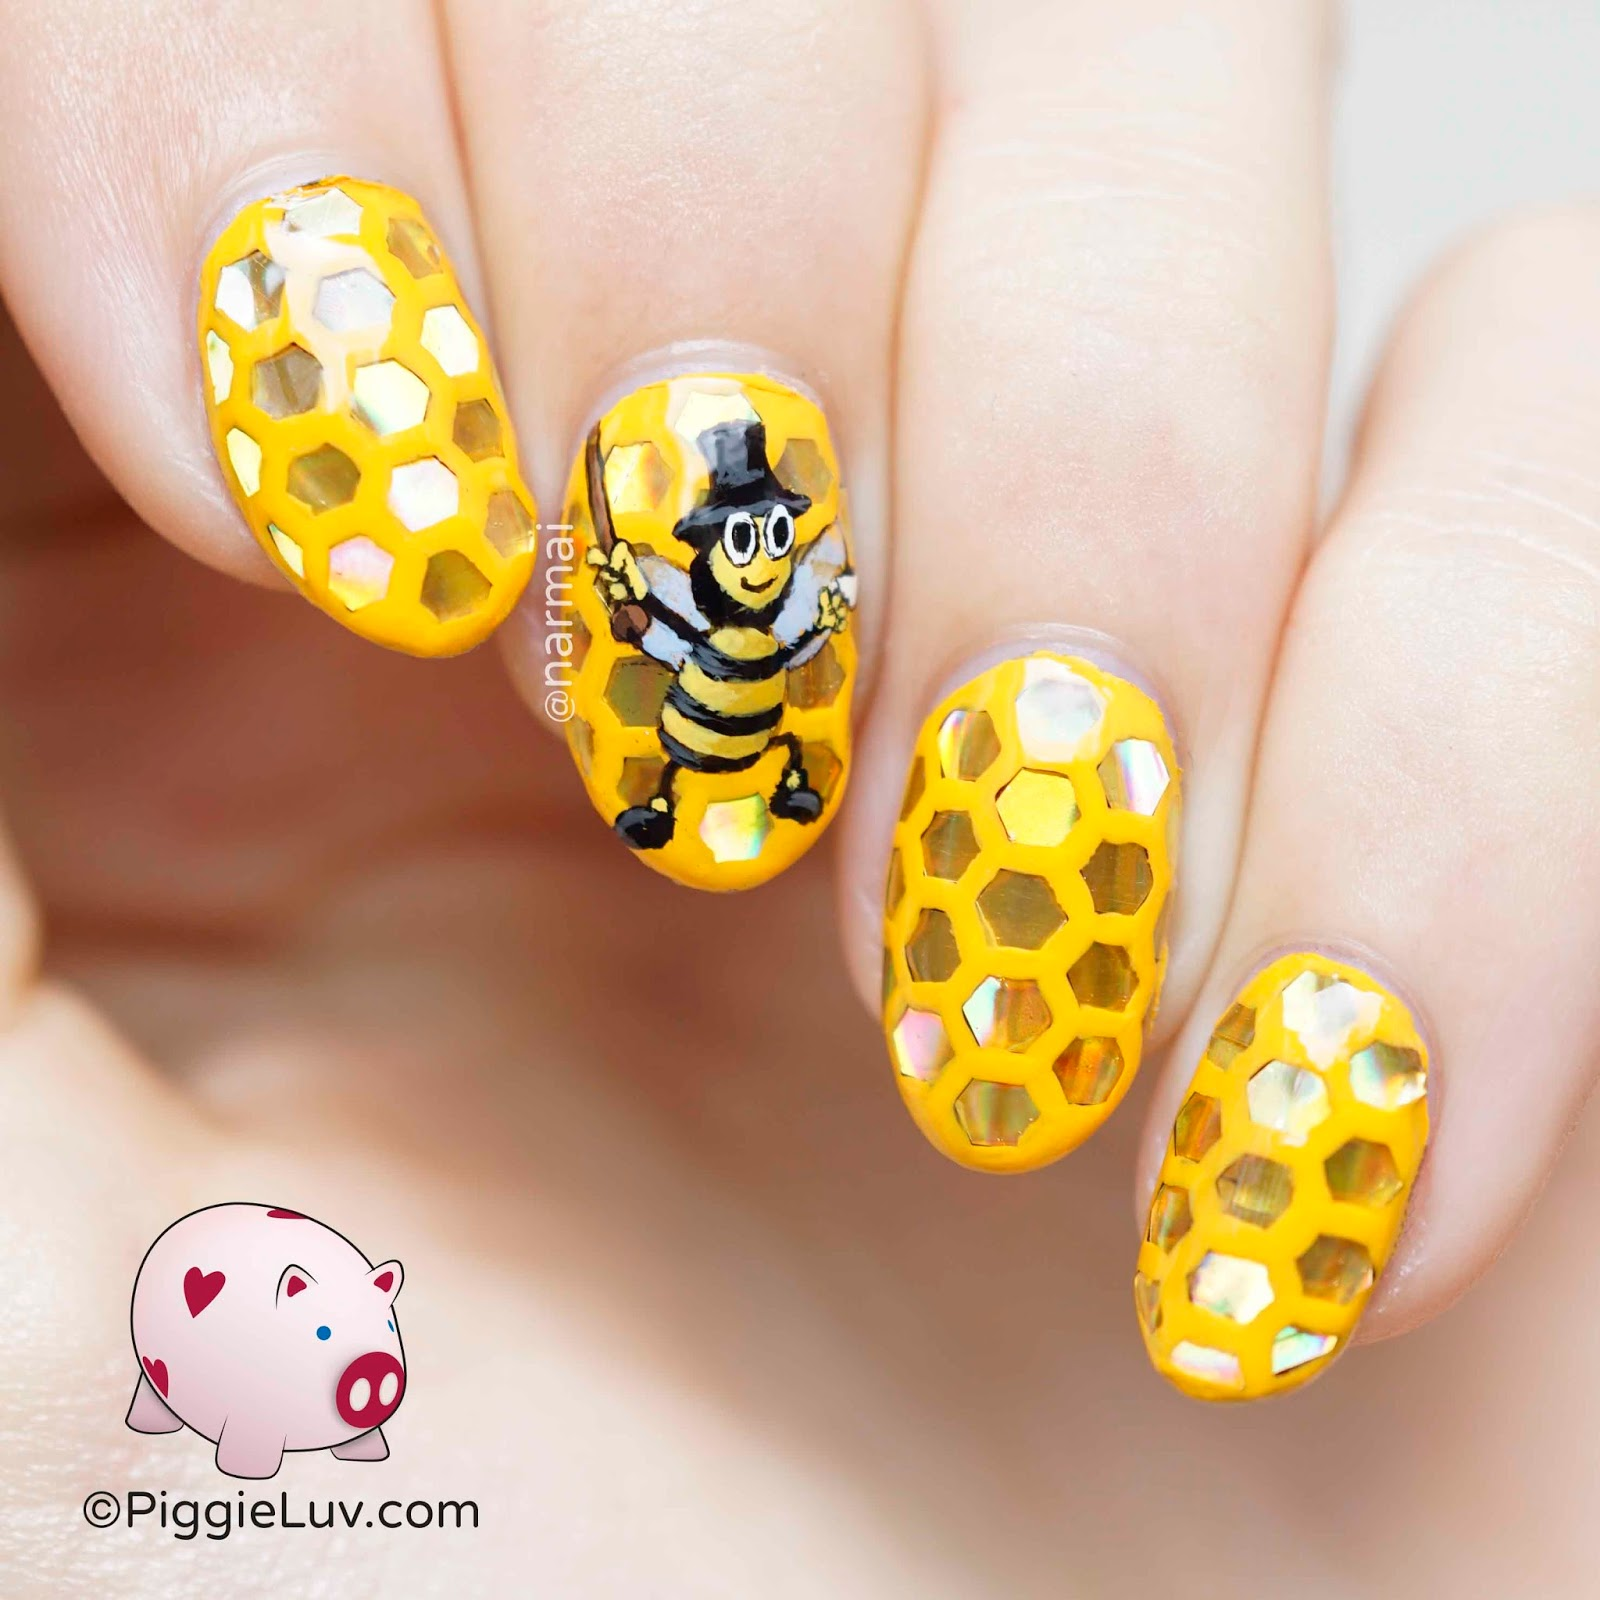 Piggieluv showbiz bee nail art showbiz bee nail art prinsesfo Choice Image